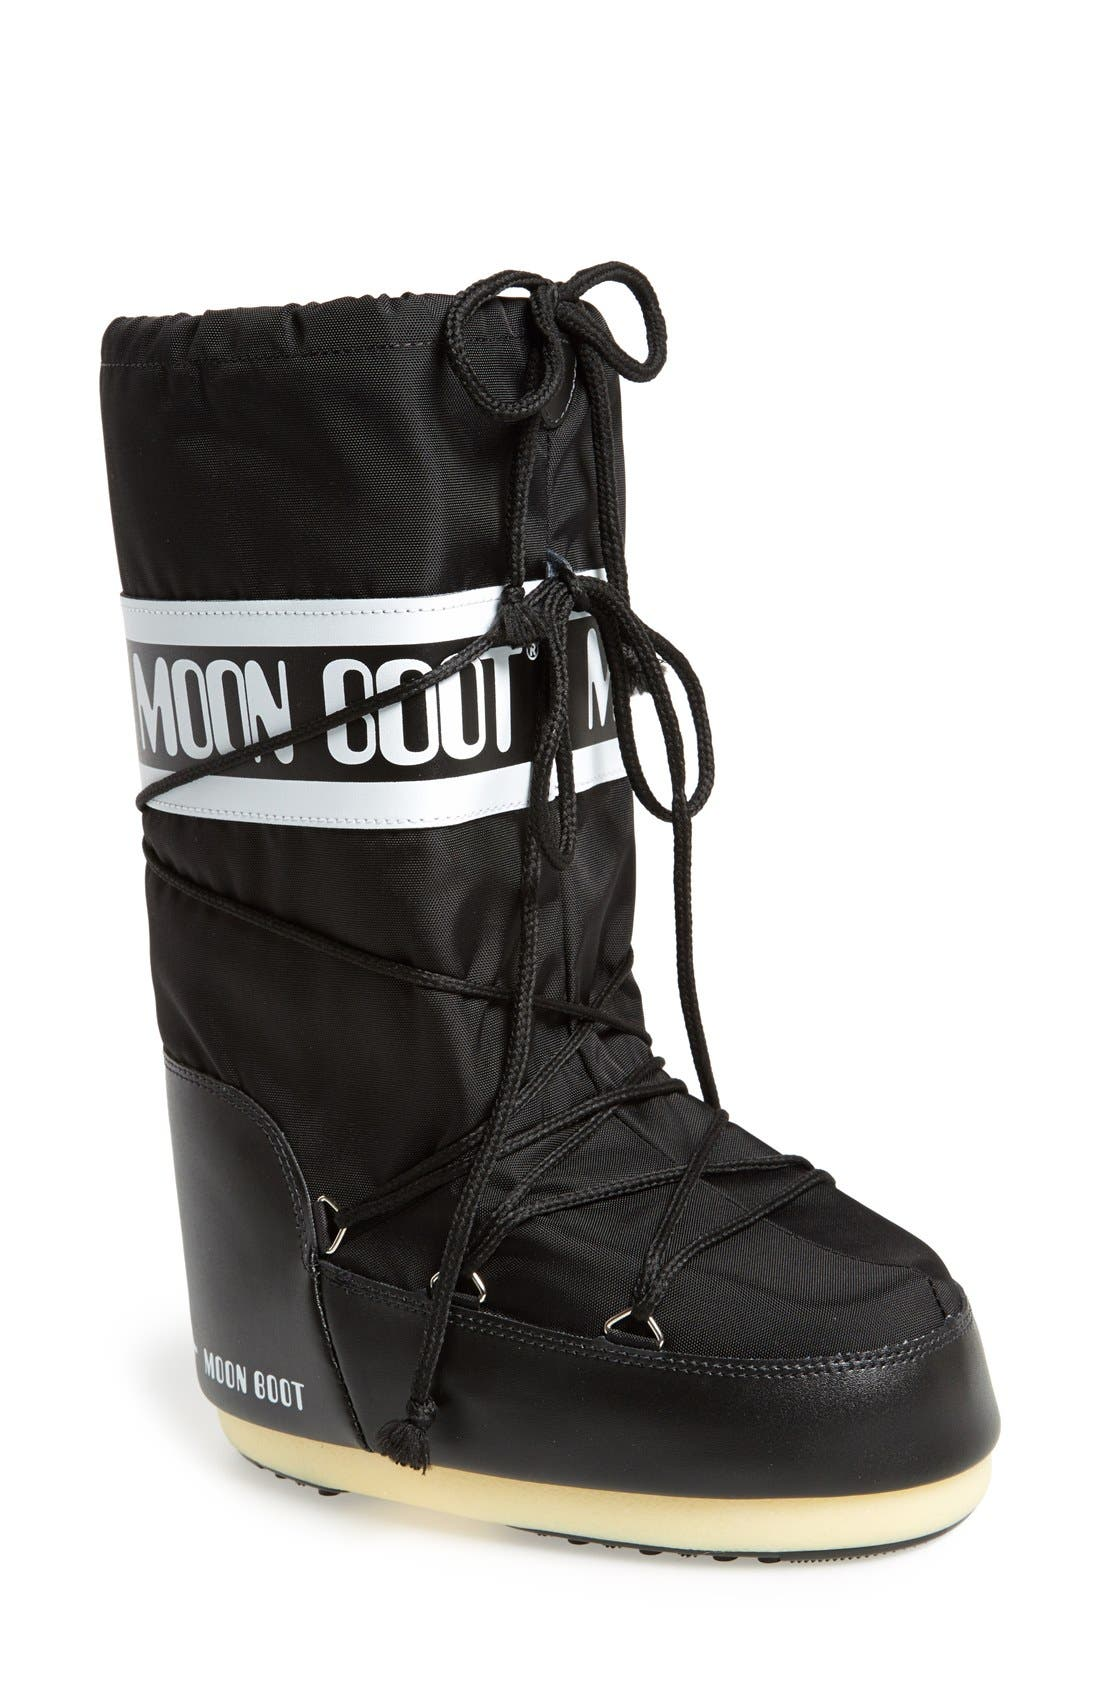 Tecnica® 'Original' Moon Boot®